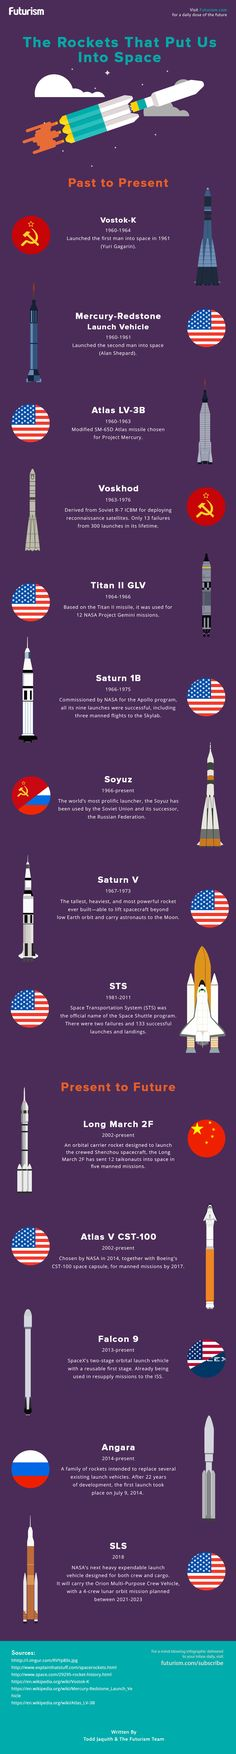 A brief history of rocketry, from the Vostok-K that launched Yuri Gagarin into space to the SLS that will get us there in the future.  http://futurism.com/images/the-rockets-that-put-us-into-space-infographic/?utm_campaign=coschedule&utm_source=pinterest&utm_medium=Futurism&utm_content=The%20Rockets%20That%20Put%20Us%20Into%20Space%20%5BINFOGRAPHIC%5D